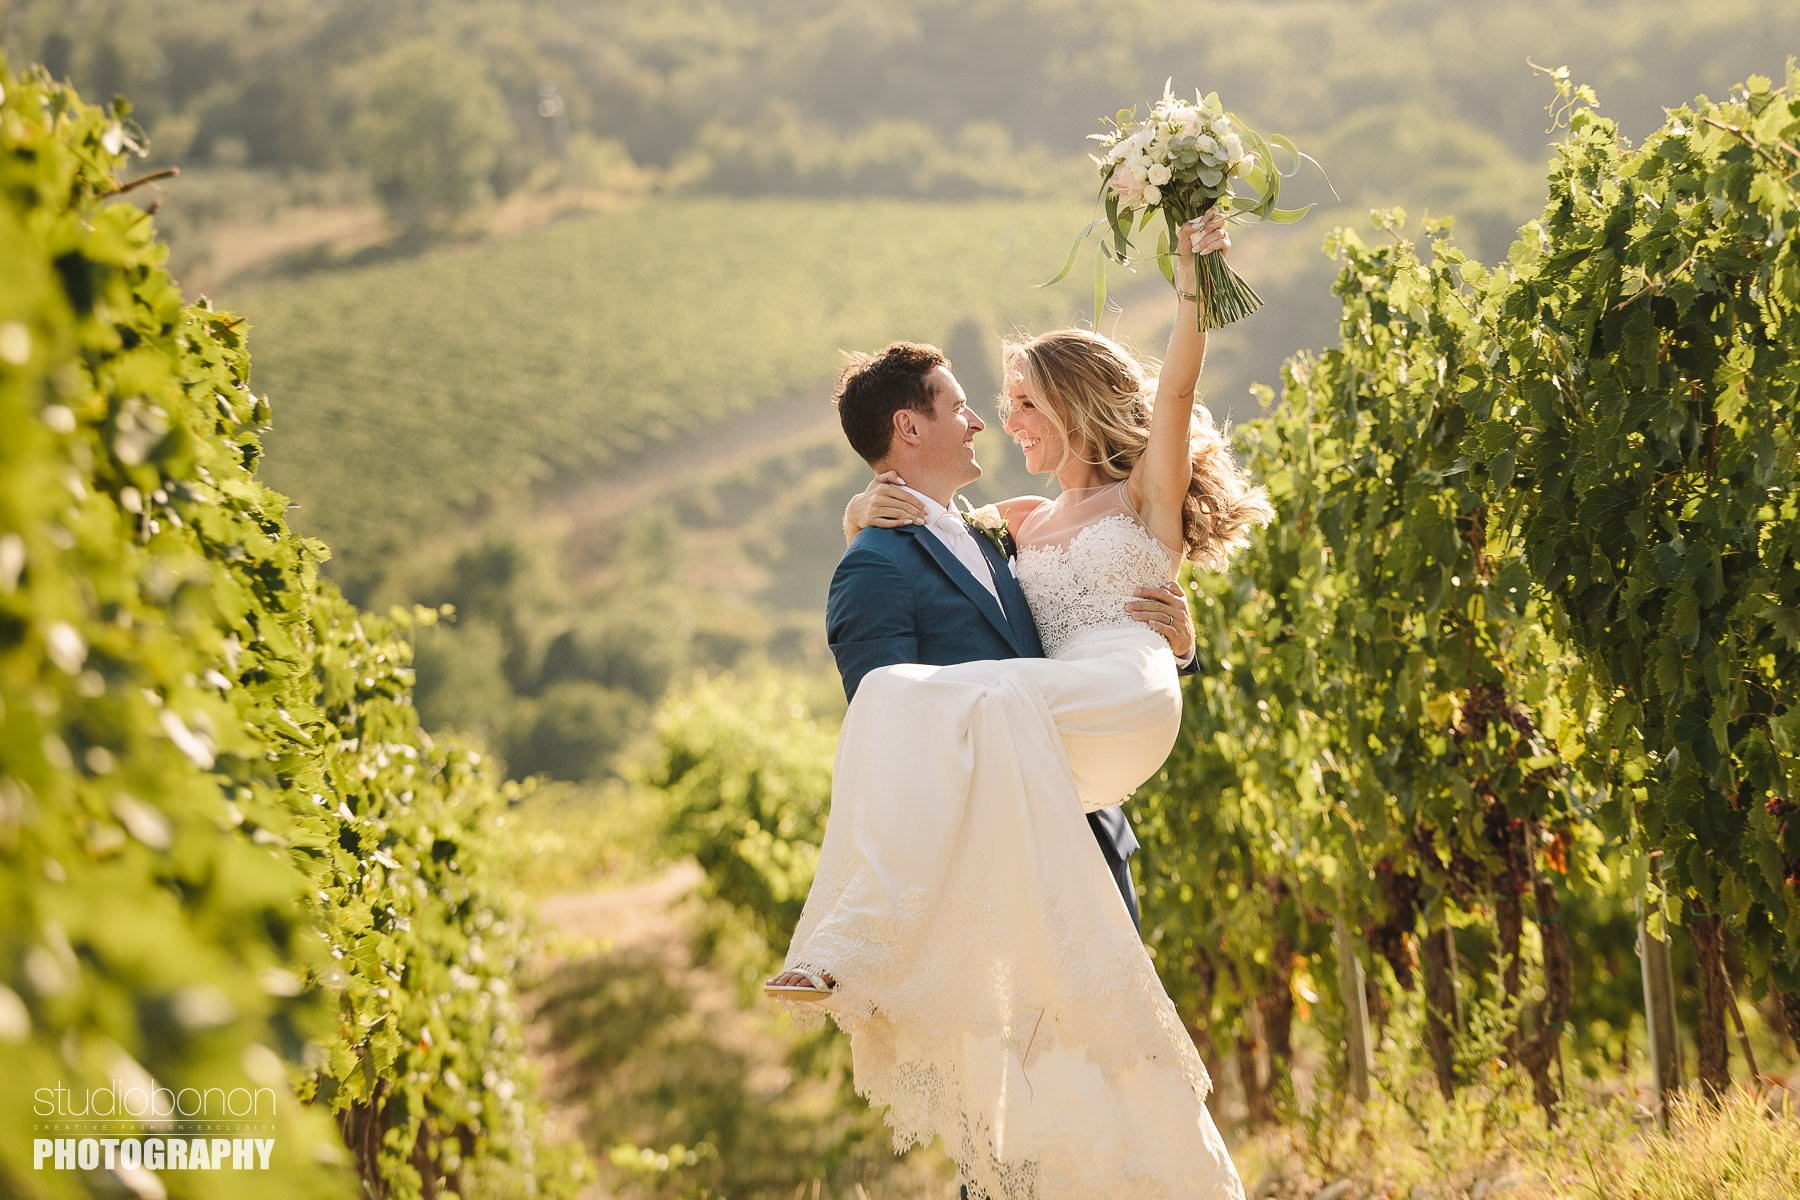 Bride and groom are sharing some lovely moment in a Tuscan vineyard into the countryside of Chianti near Villa Pisignano